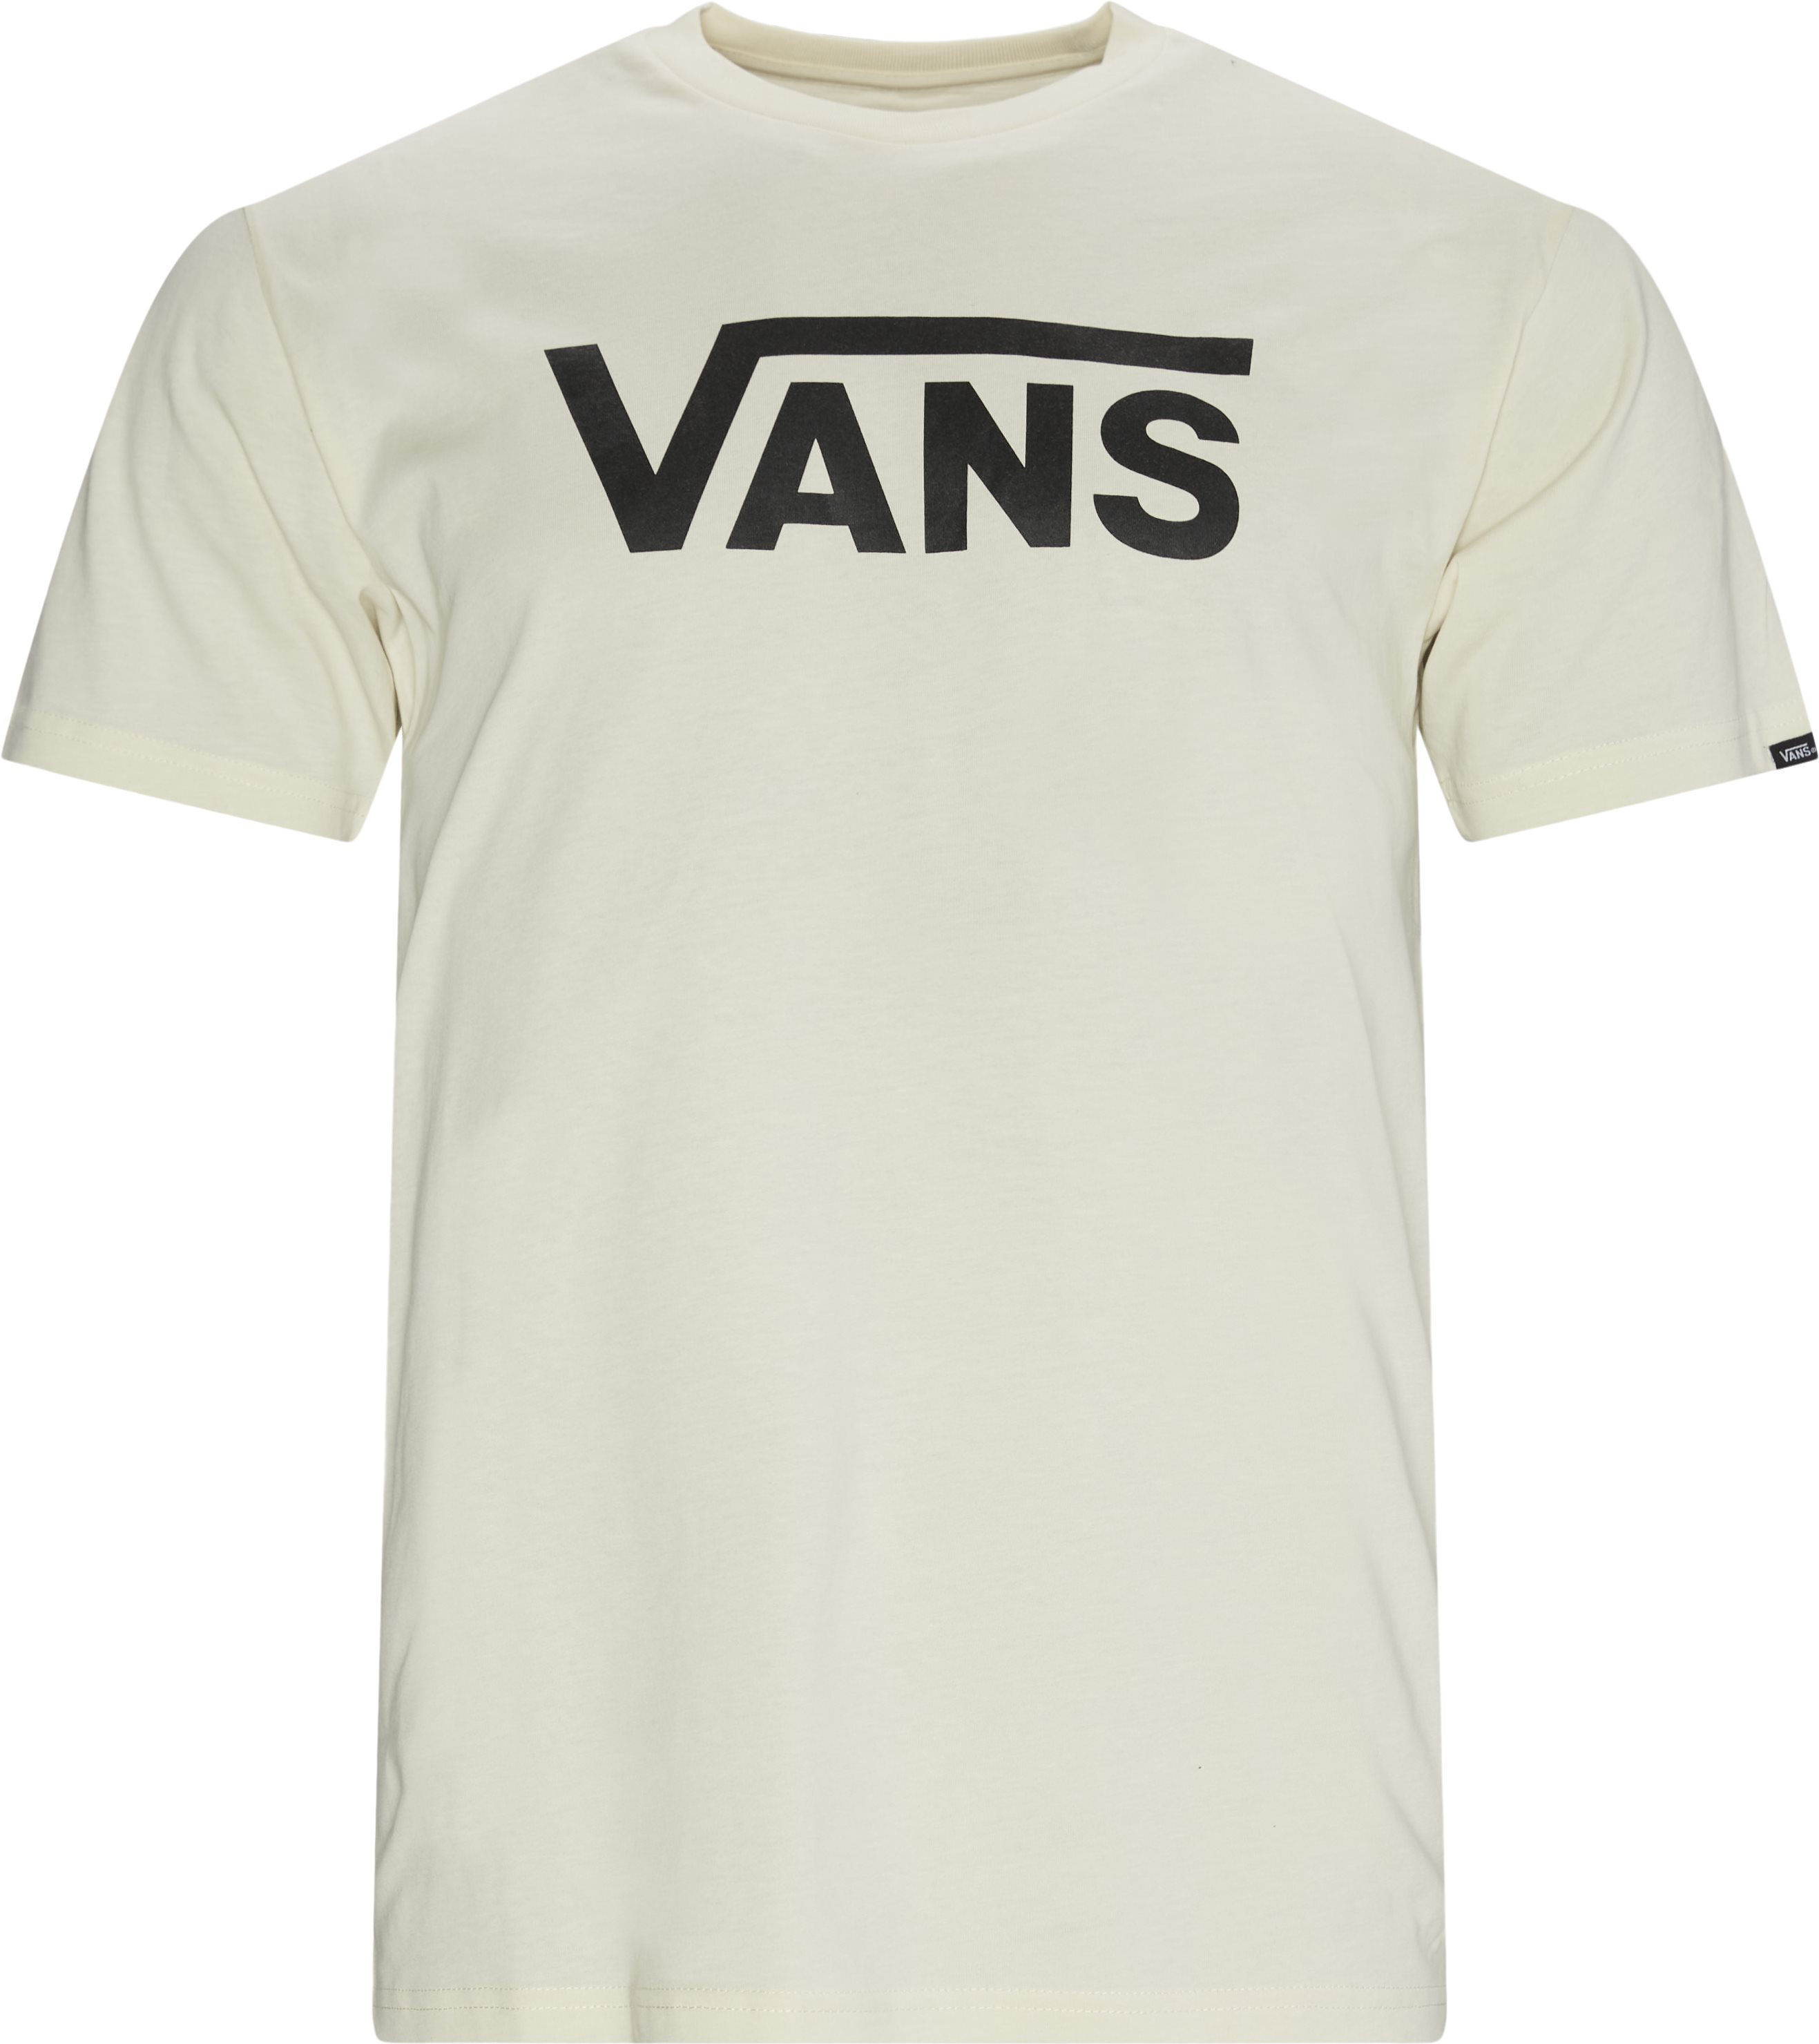 Classic Tee - T-shirts - Regular - Sand